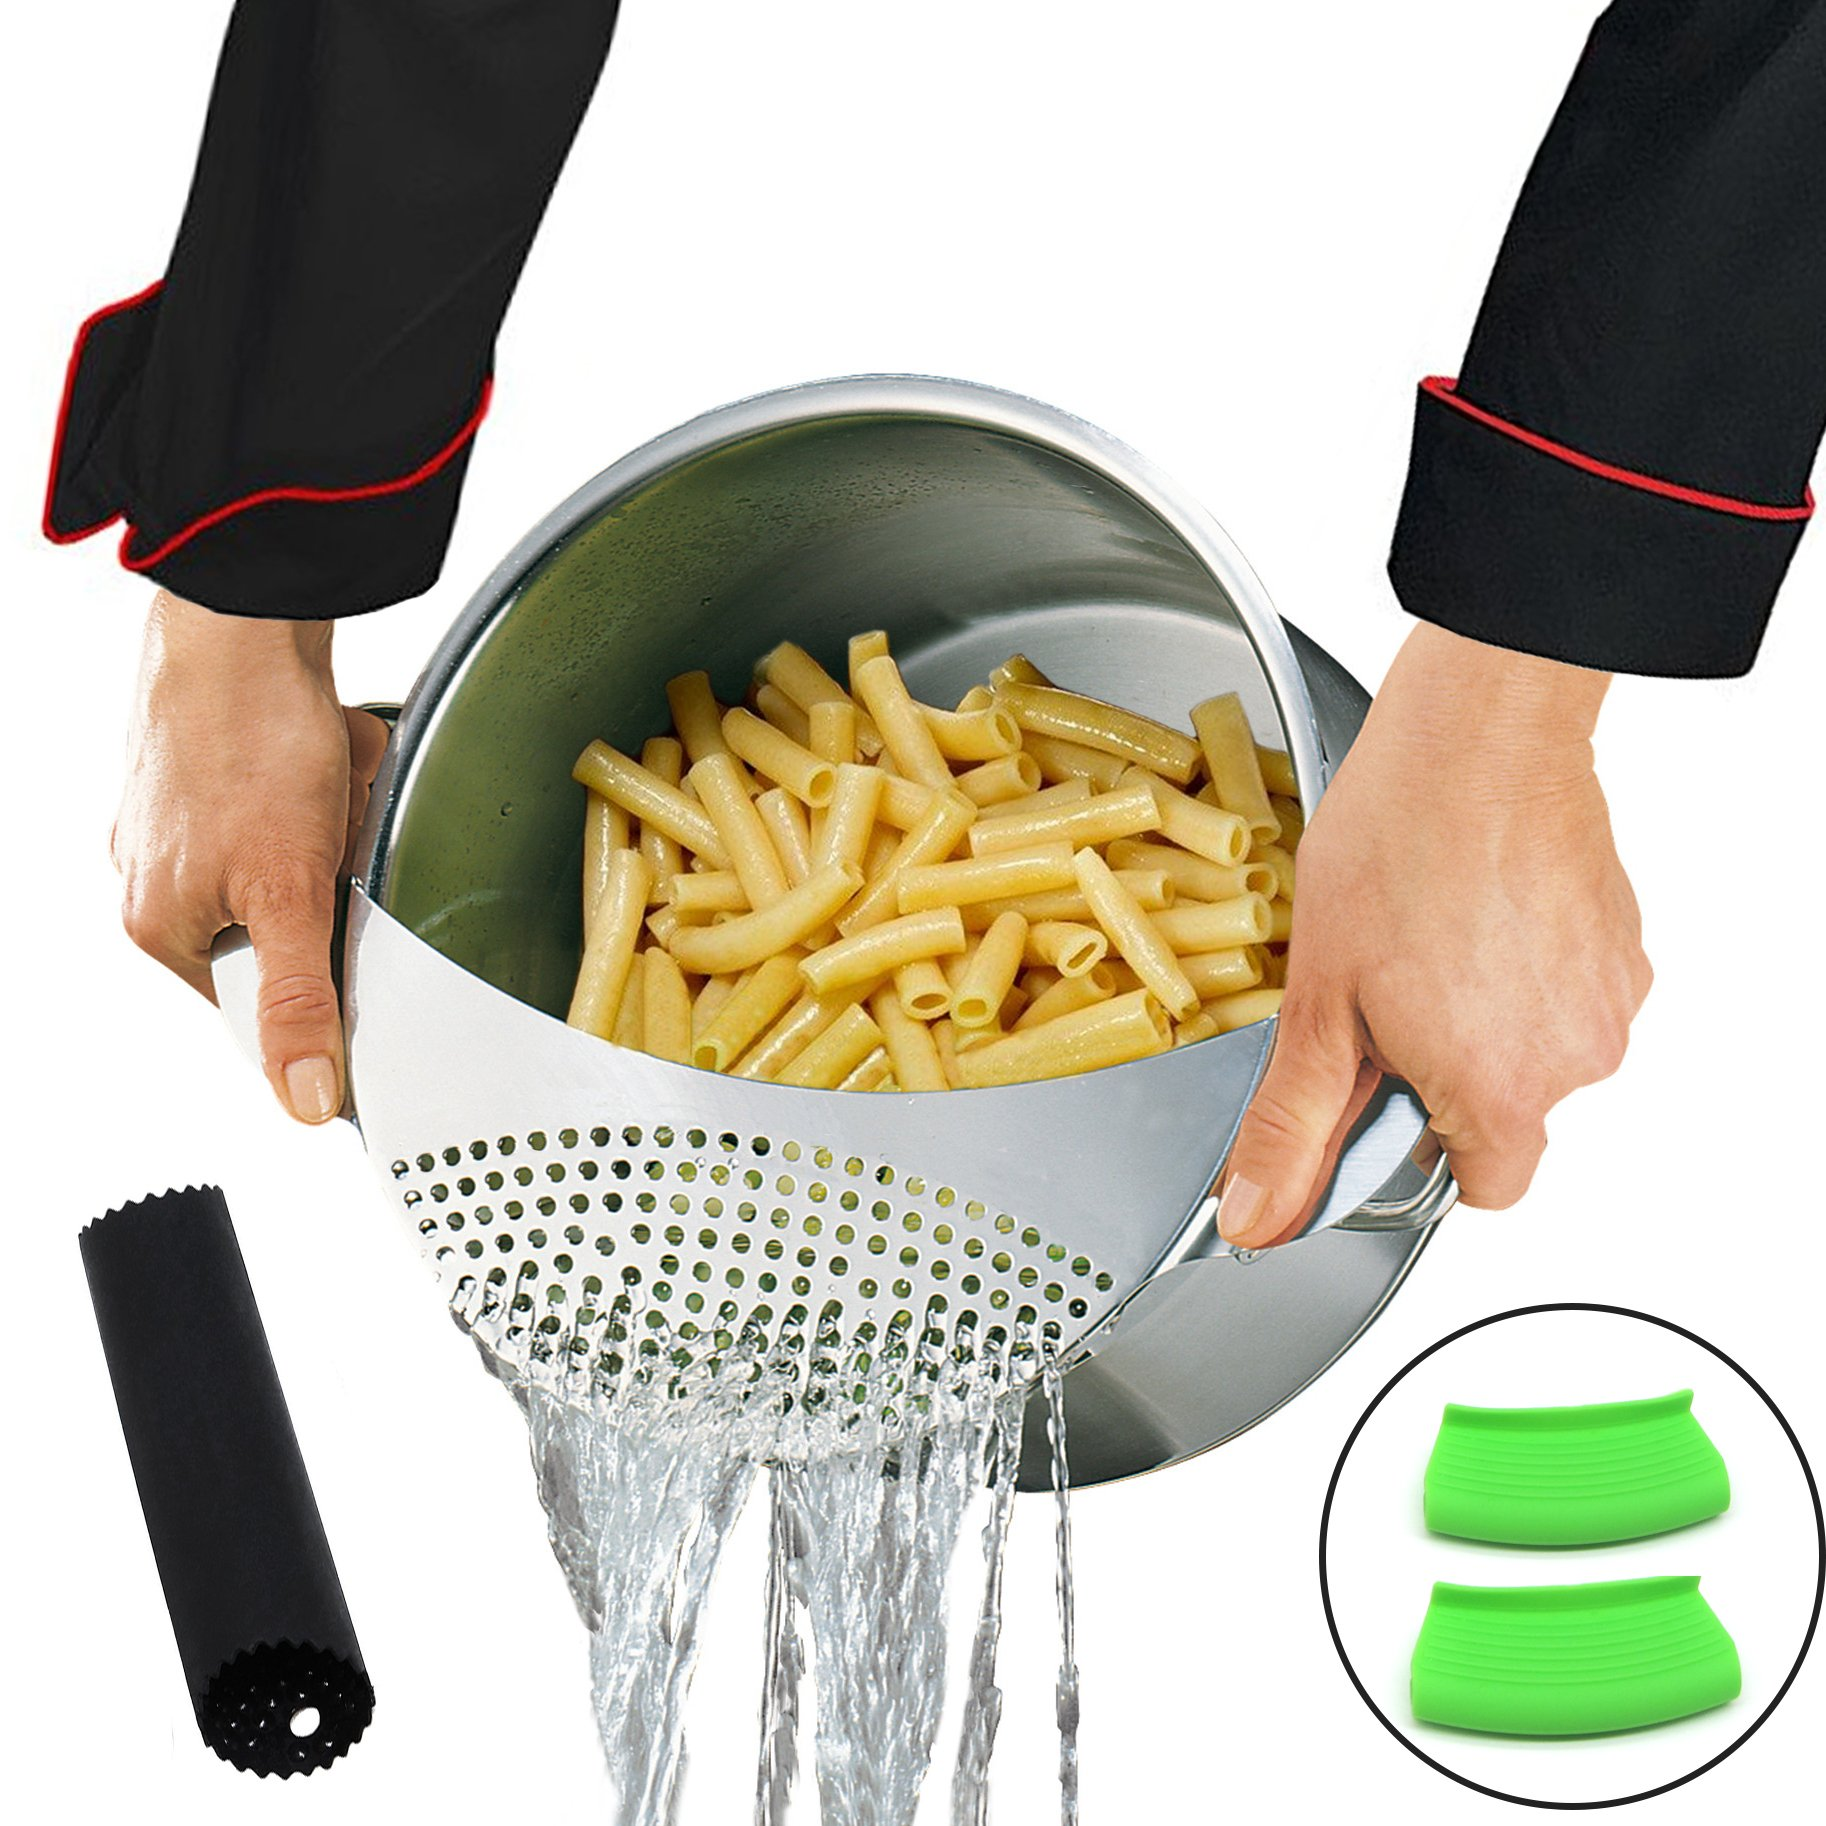 Cheap Pasta Pot And Strainer Find Pasta Pot And Strainer Deals On Line At Alibaba Com